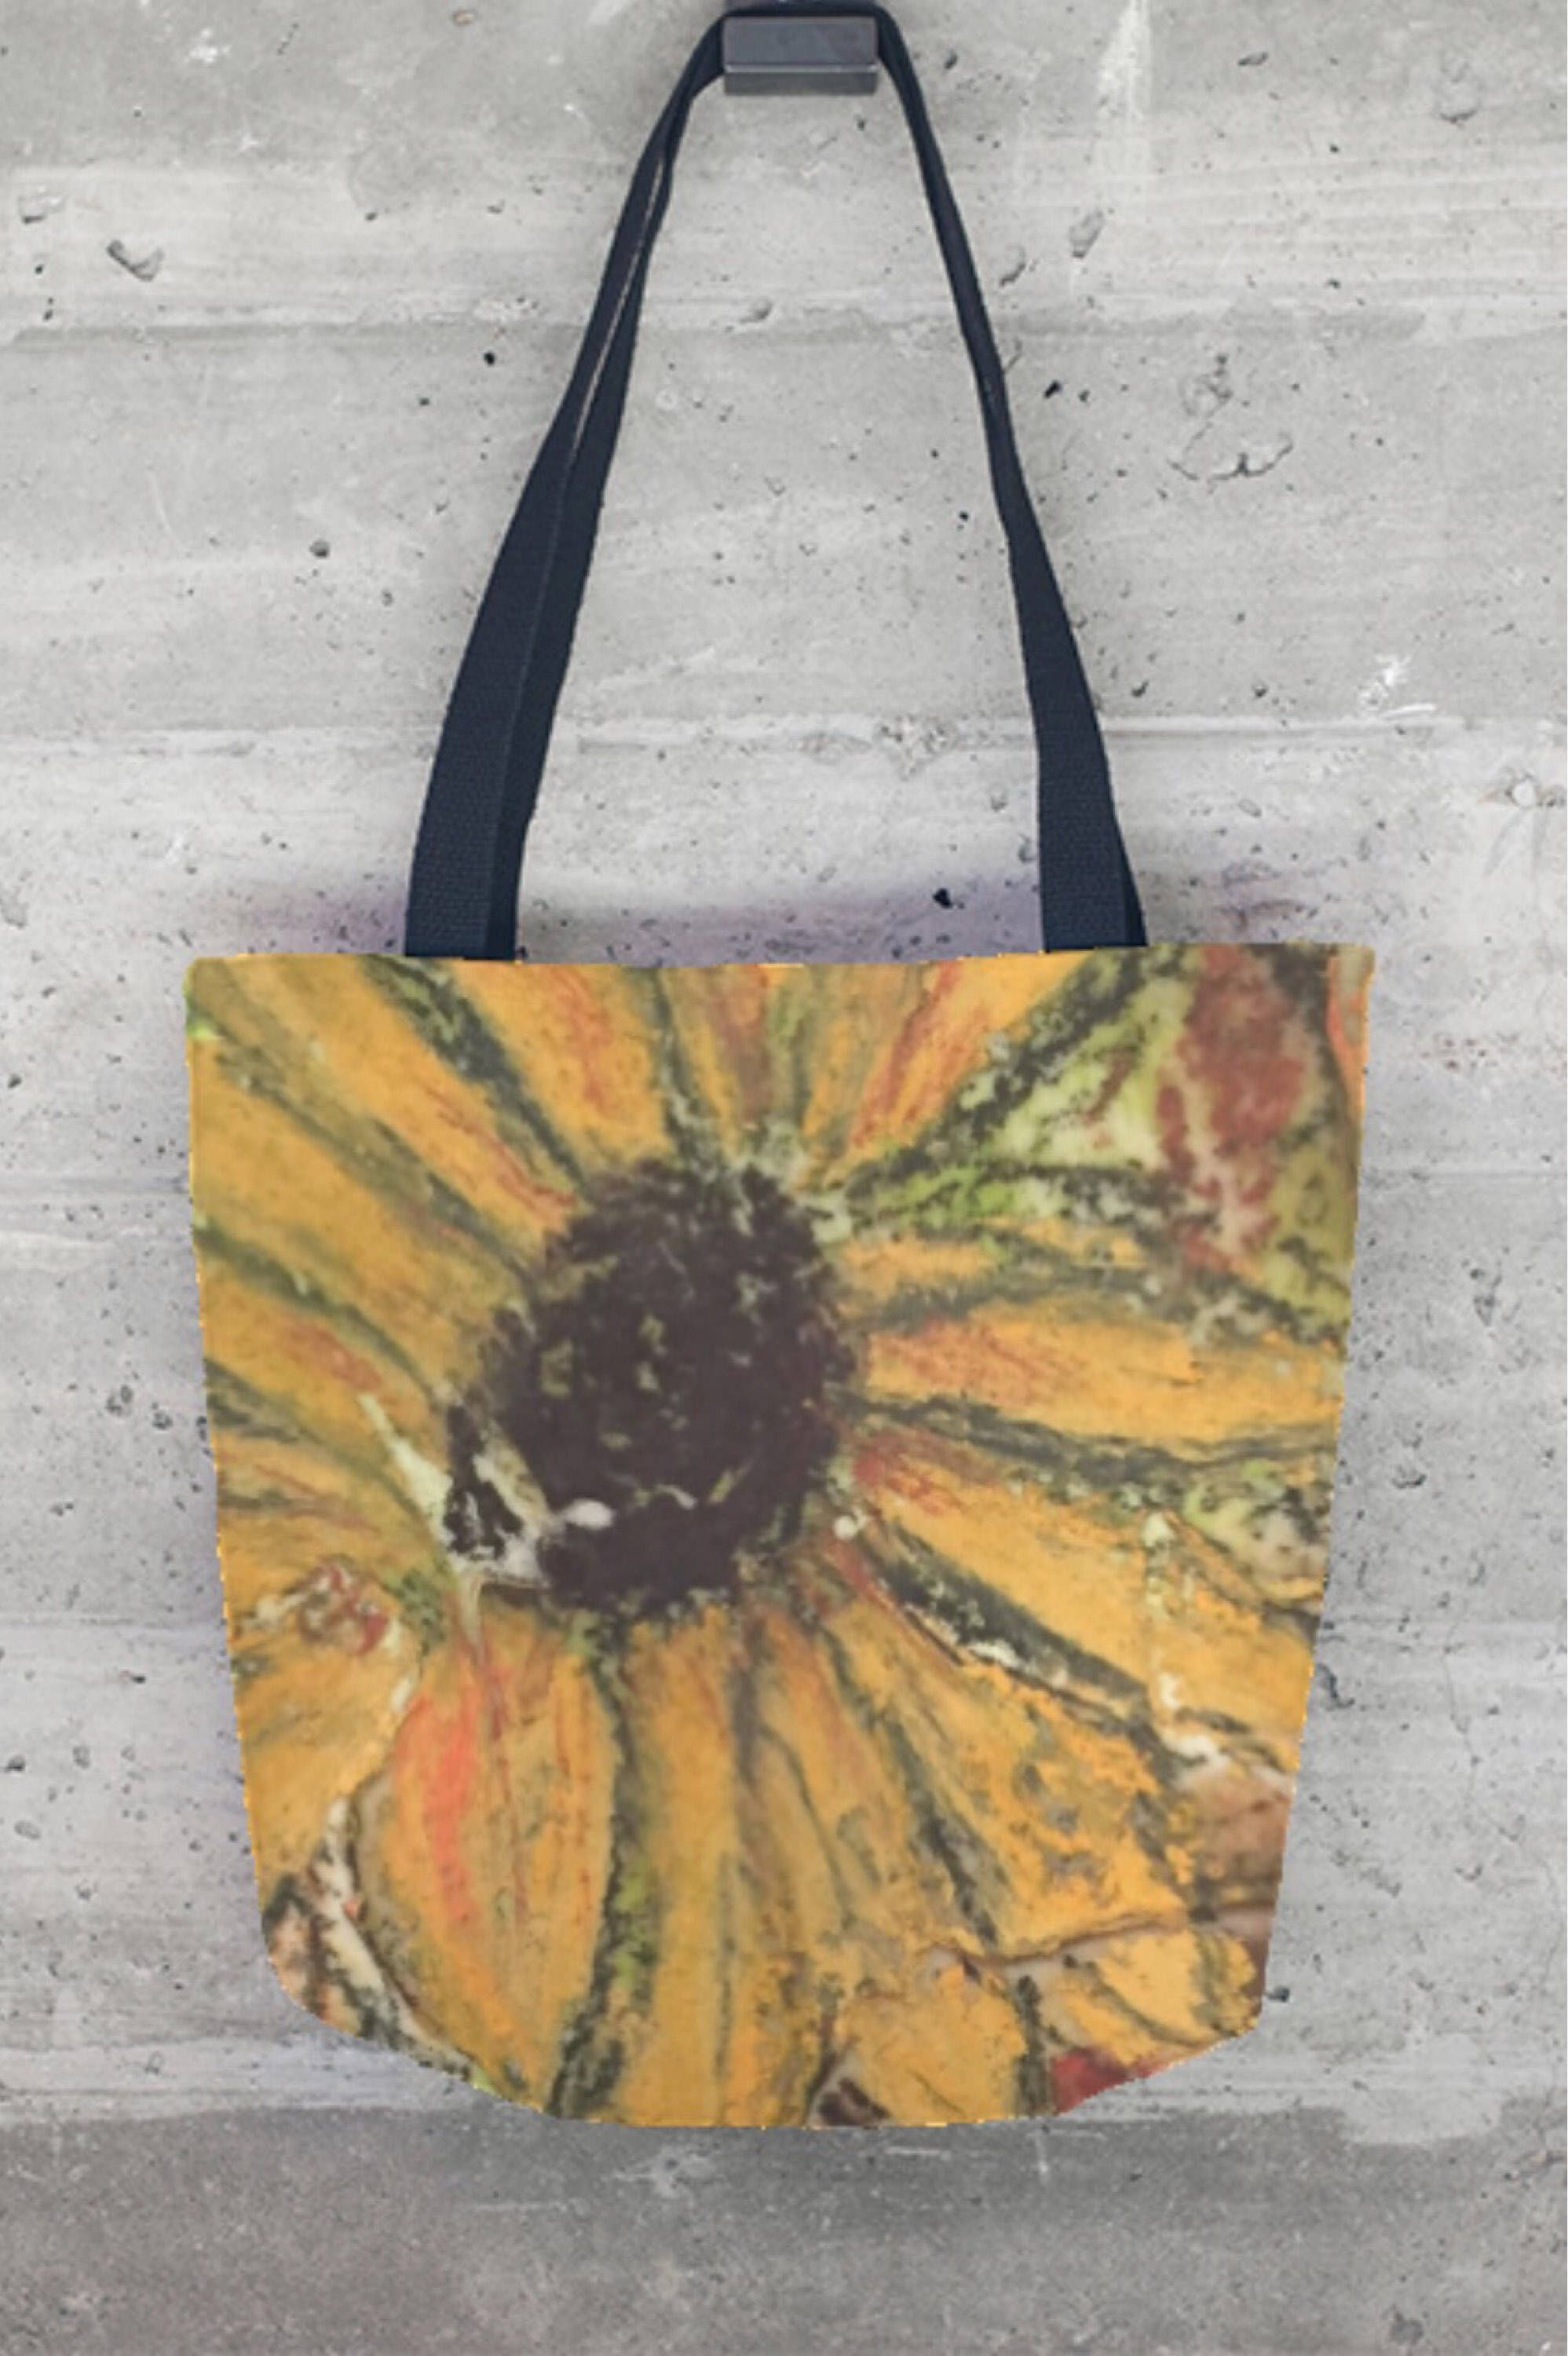 Tote Bag - Sunflower Tote Bag by VIDA VIDA